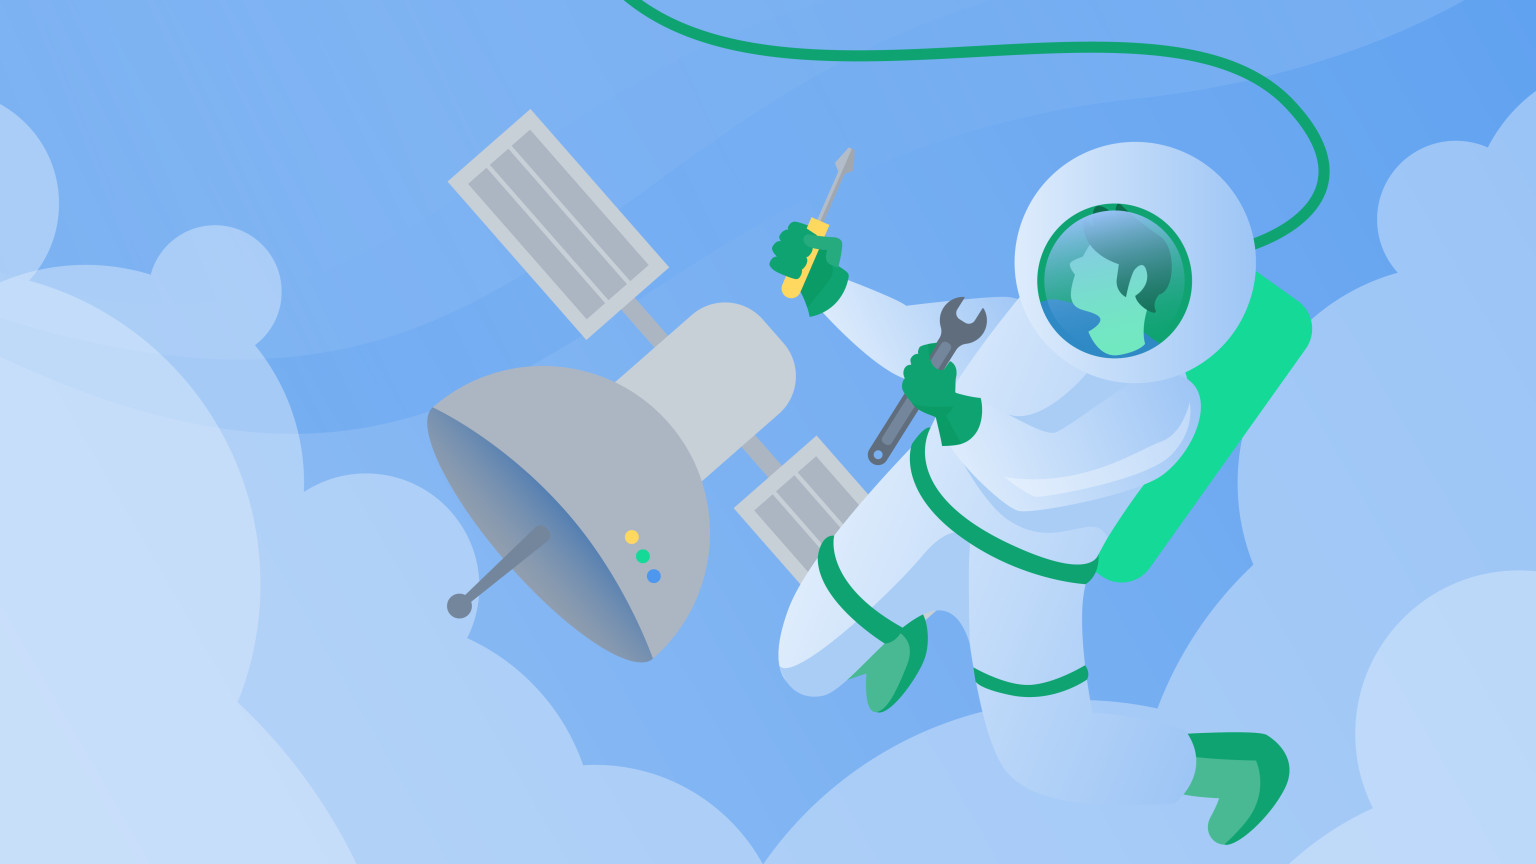 Space person floating near a satellite.